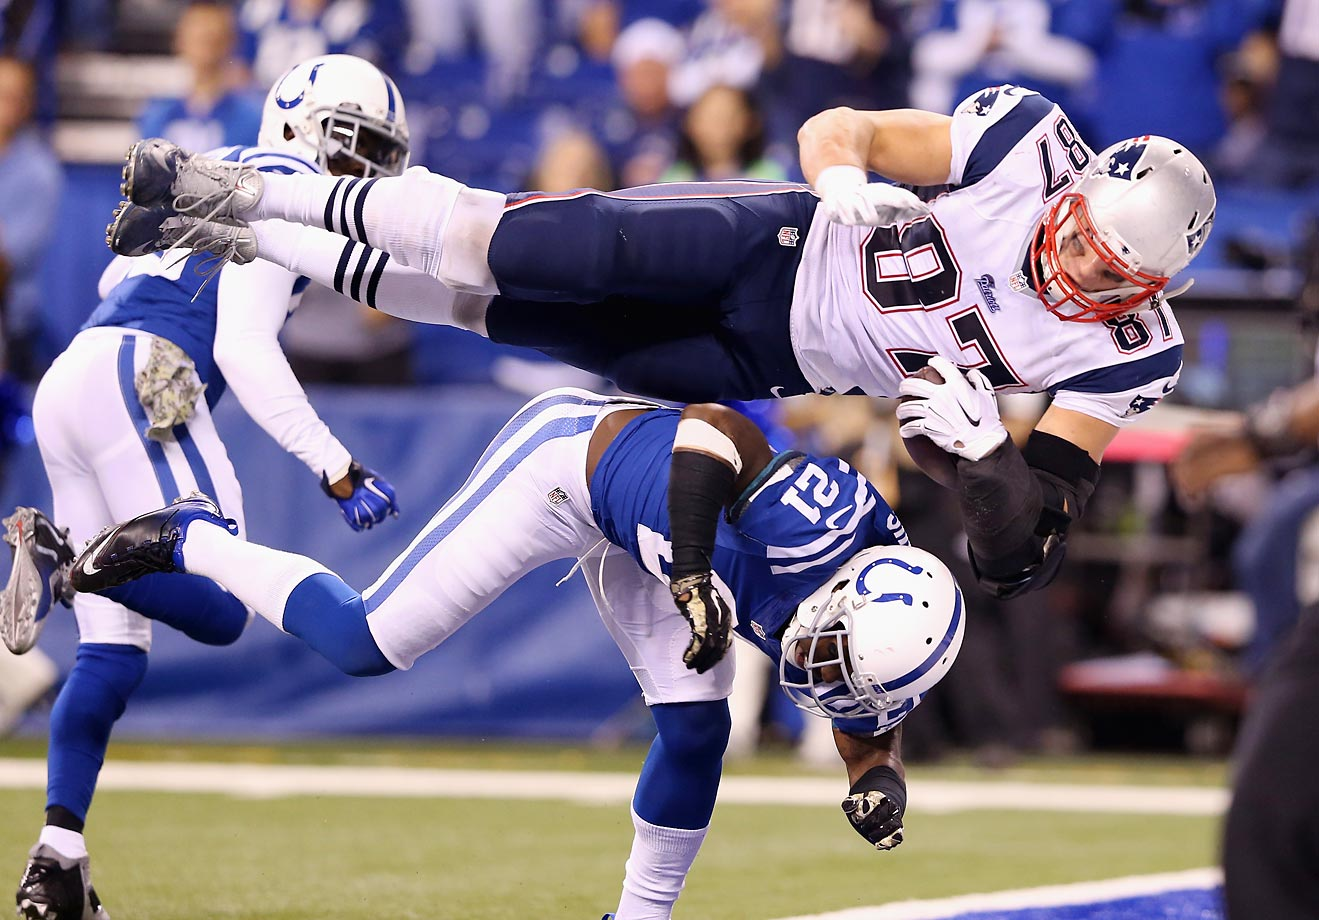 New England Patriots tight end Rob Gronkowski scores a touchdown against Vontae Davis of the Indianapolis Colts. The Patriots defeated the Colts 42-20.